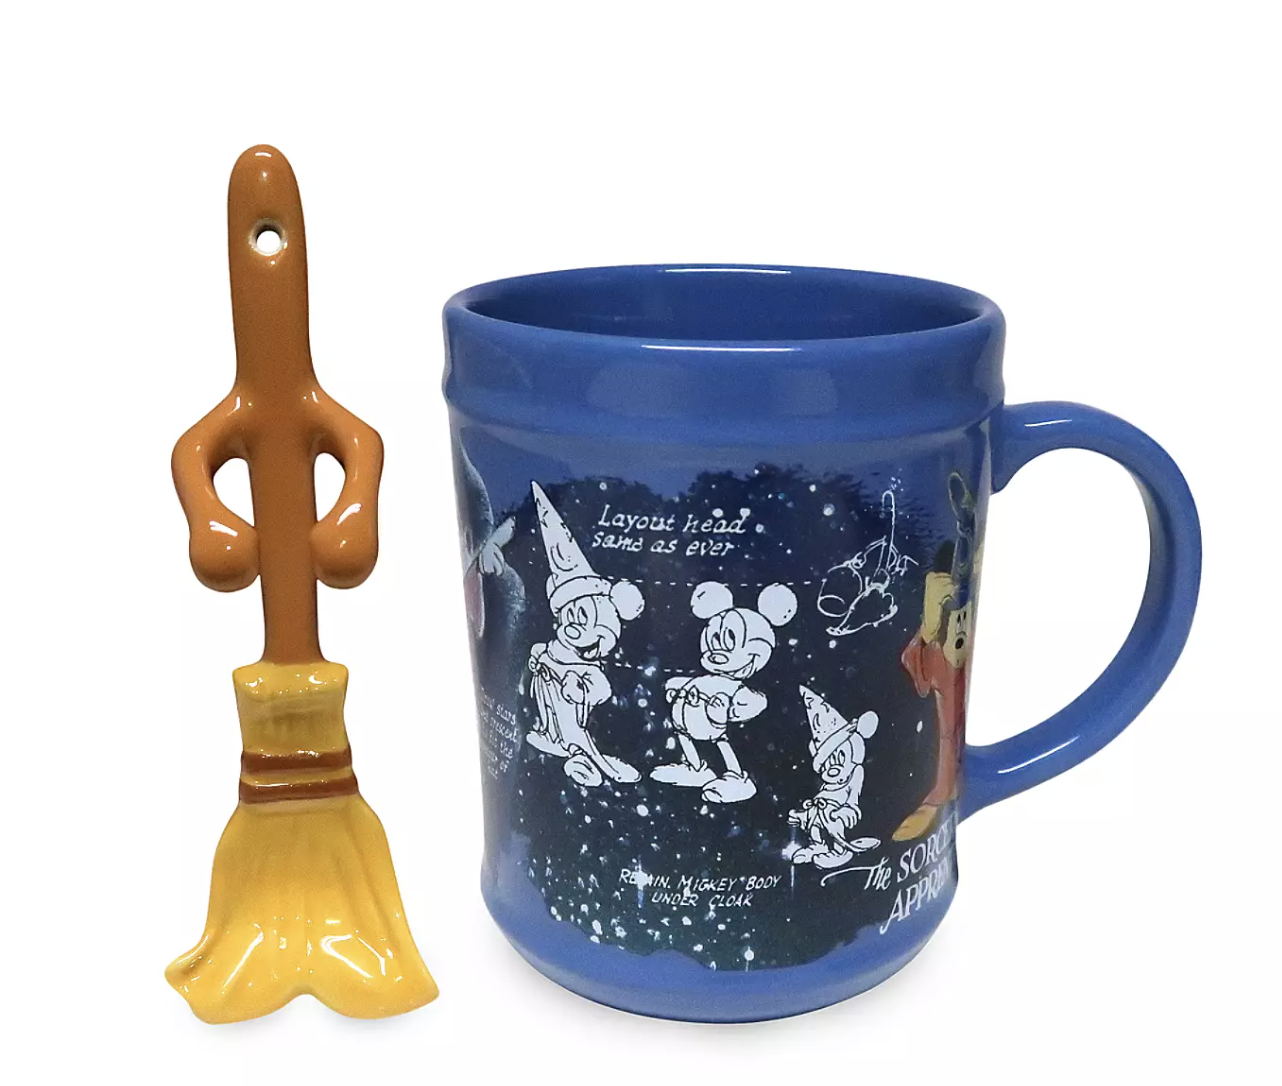 New Disney Mugs Featuring Sorcerer Mickey Tangled And More Have Arrived Online Allears Net